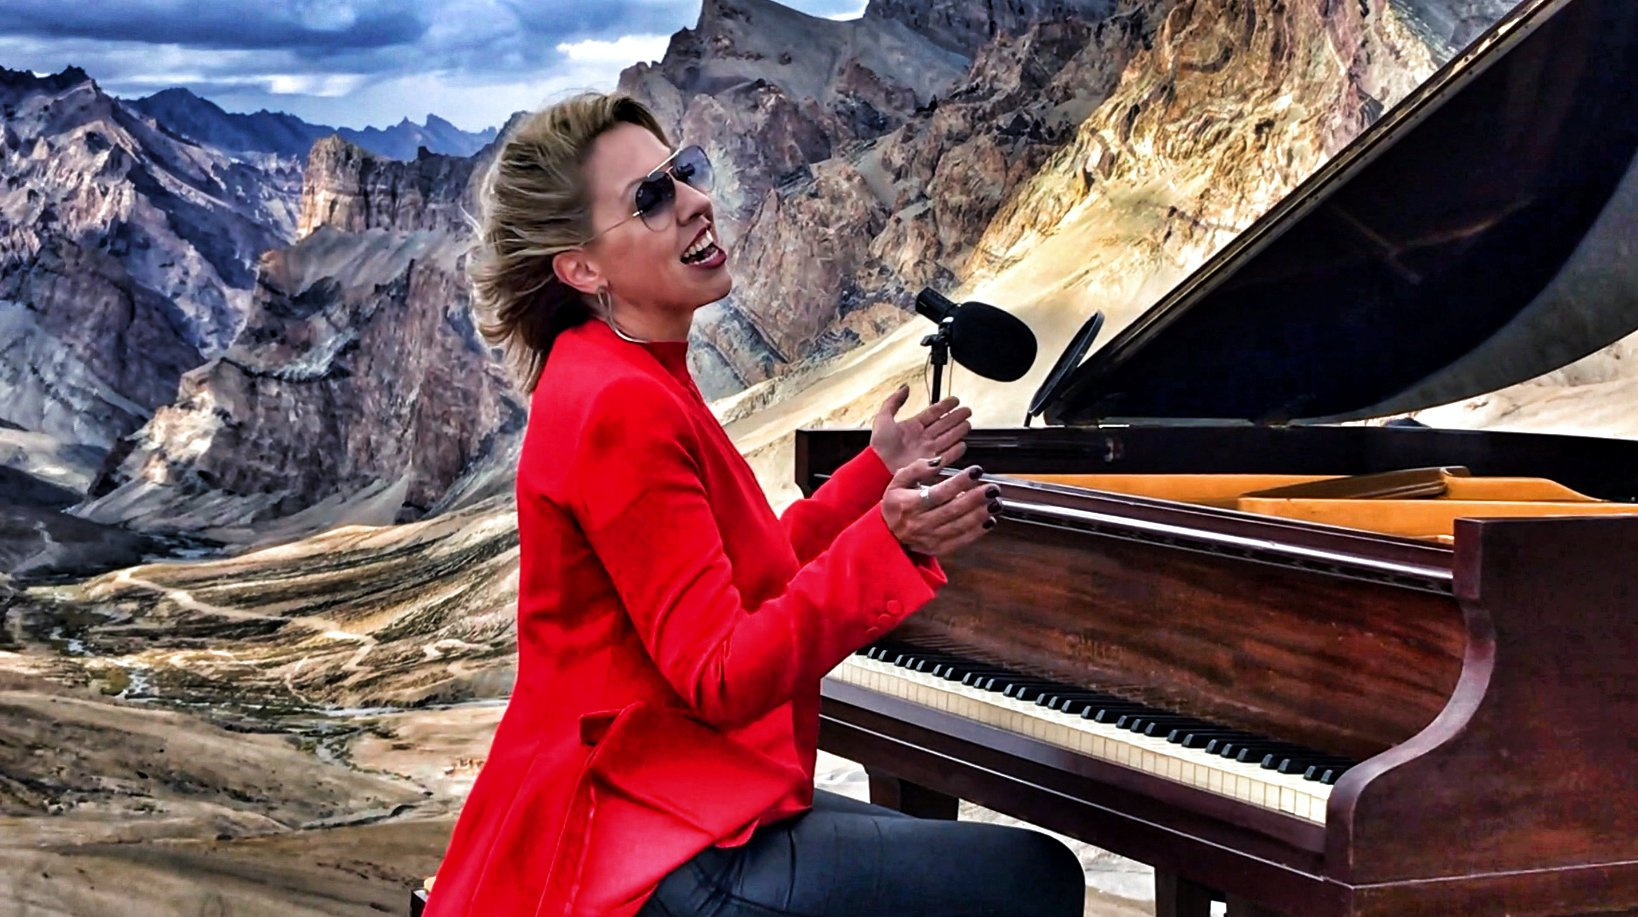 Pianist Evelina De Lain, 41, breaks records as she performs a classical concert ? 5,000 metres high in the Himalayas. See SWNS story SWOCpiano; An impressive feat for anyone, the London-based composer's triumph was even more notable after losing proper function of her hands when she developed repetitive strain injury, chronic tendonitis and polyarthritis in her finger joints. She was diagnosed in 1995 and doctor's later warned her condition was incurable and, after years of practising for up to 12 hours a day, she may never be able to play properly again. However, determined Evelina started intensive therapy and has now gained back 70% use of her hands ? and created her very own mixed style of classical and jazz music.